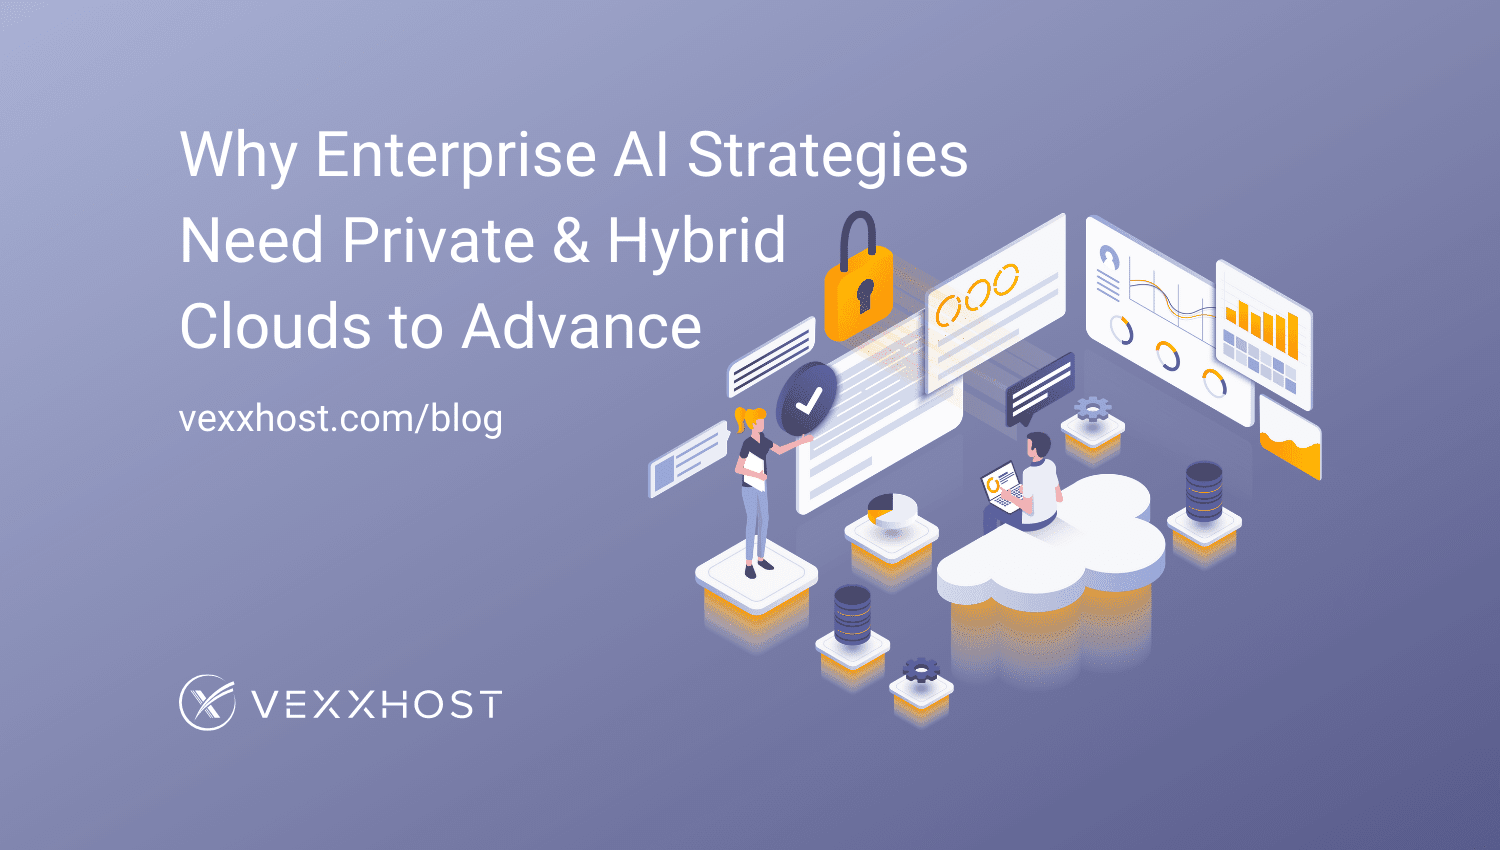 Why Enterprise AI Strategies Need Private & Hybrid Clouds to Advance